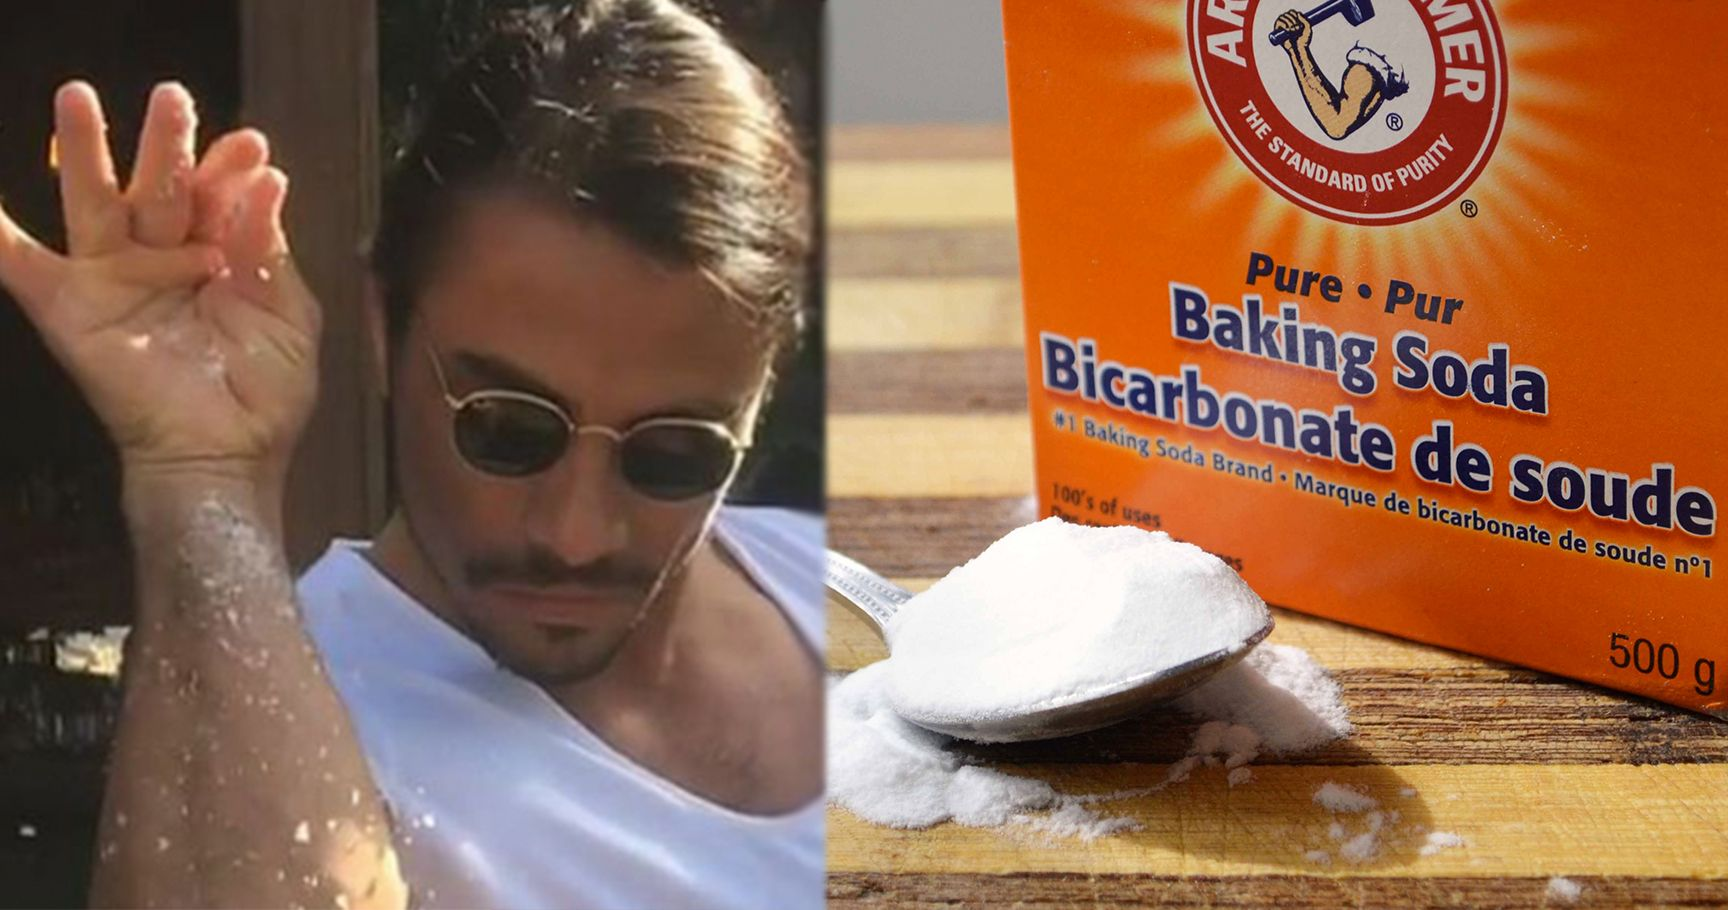 16 Secret Uses Of Baking Soda That'll Transform Your Life